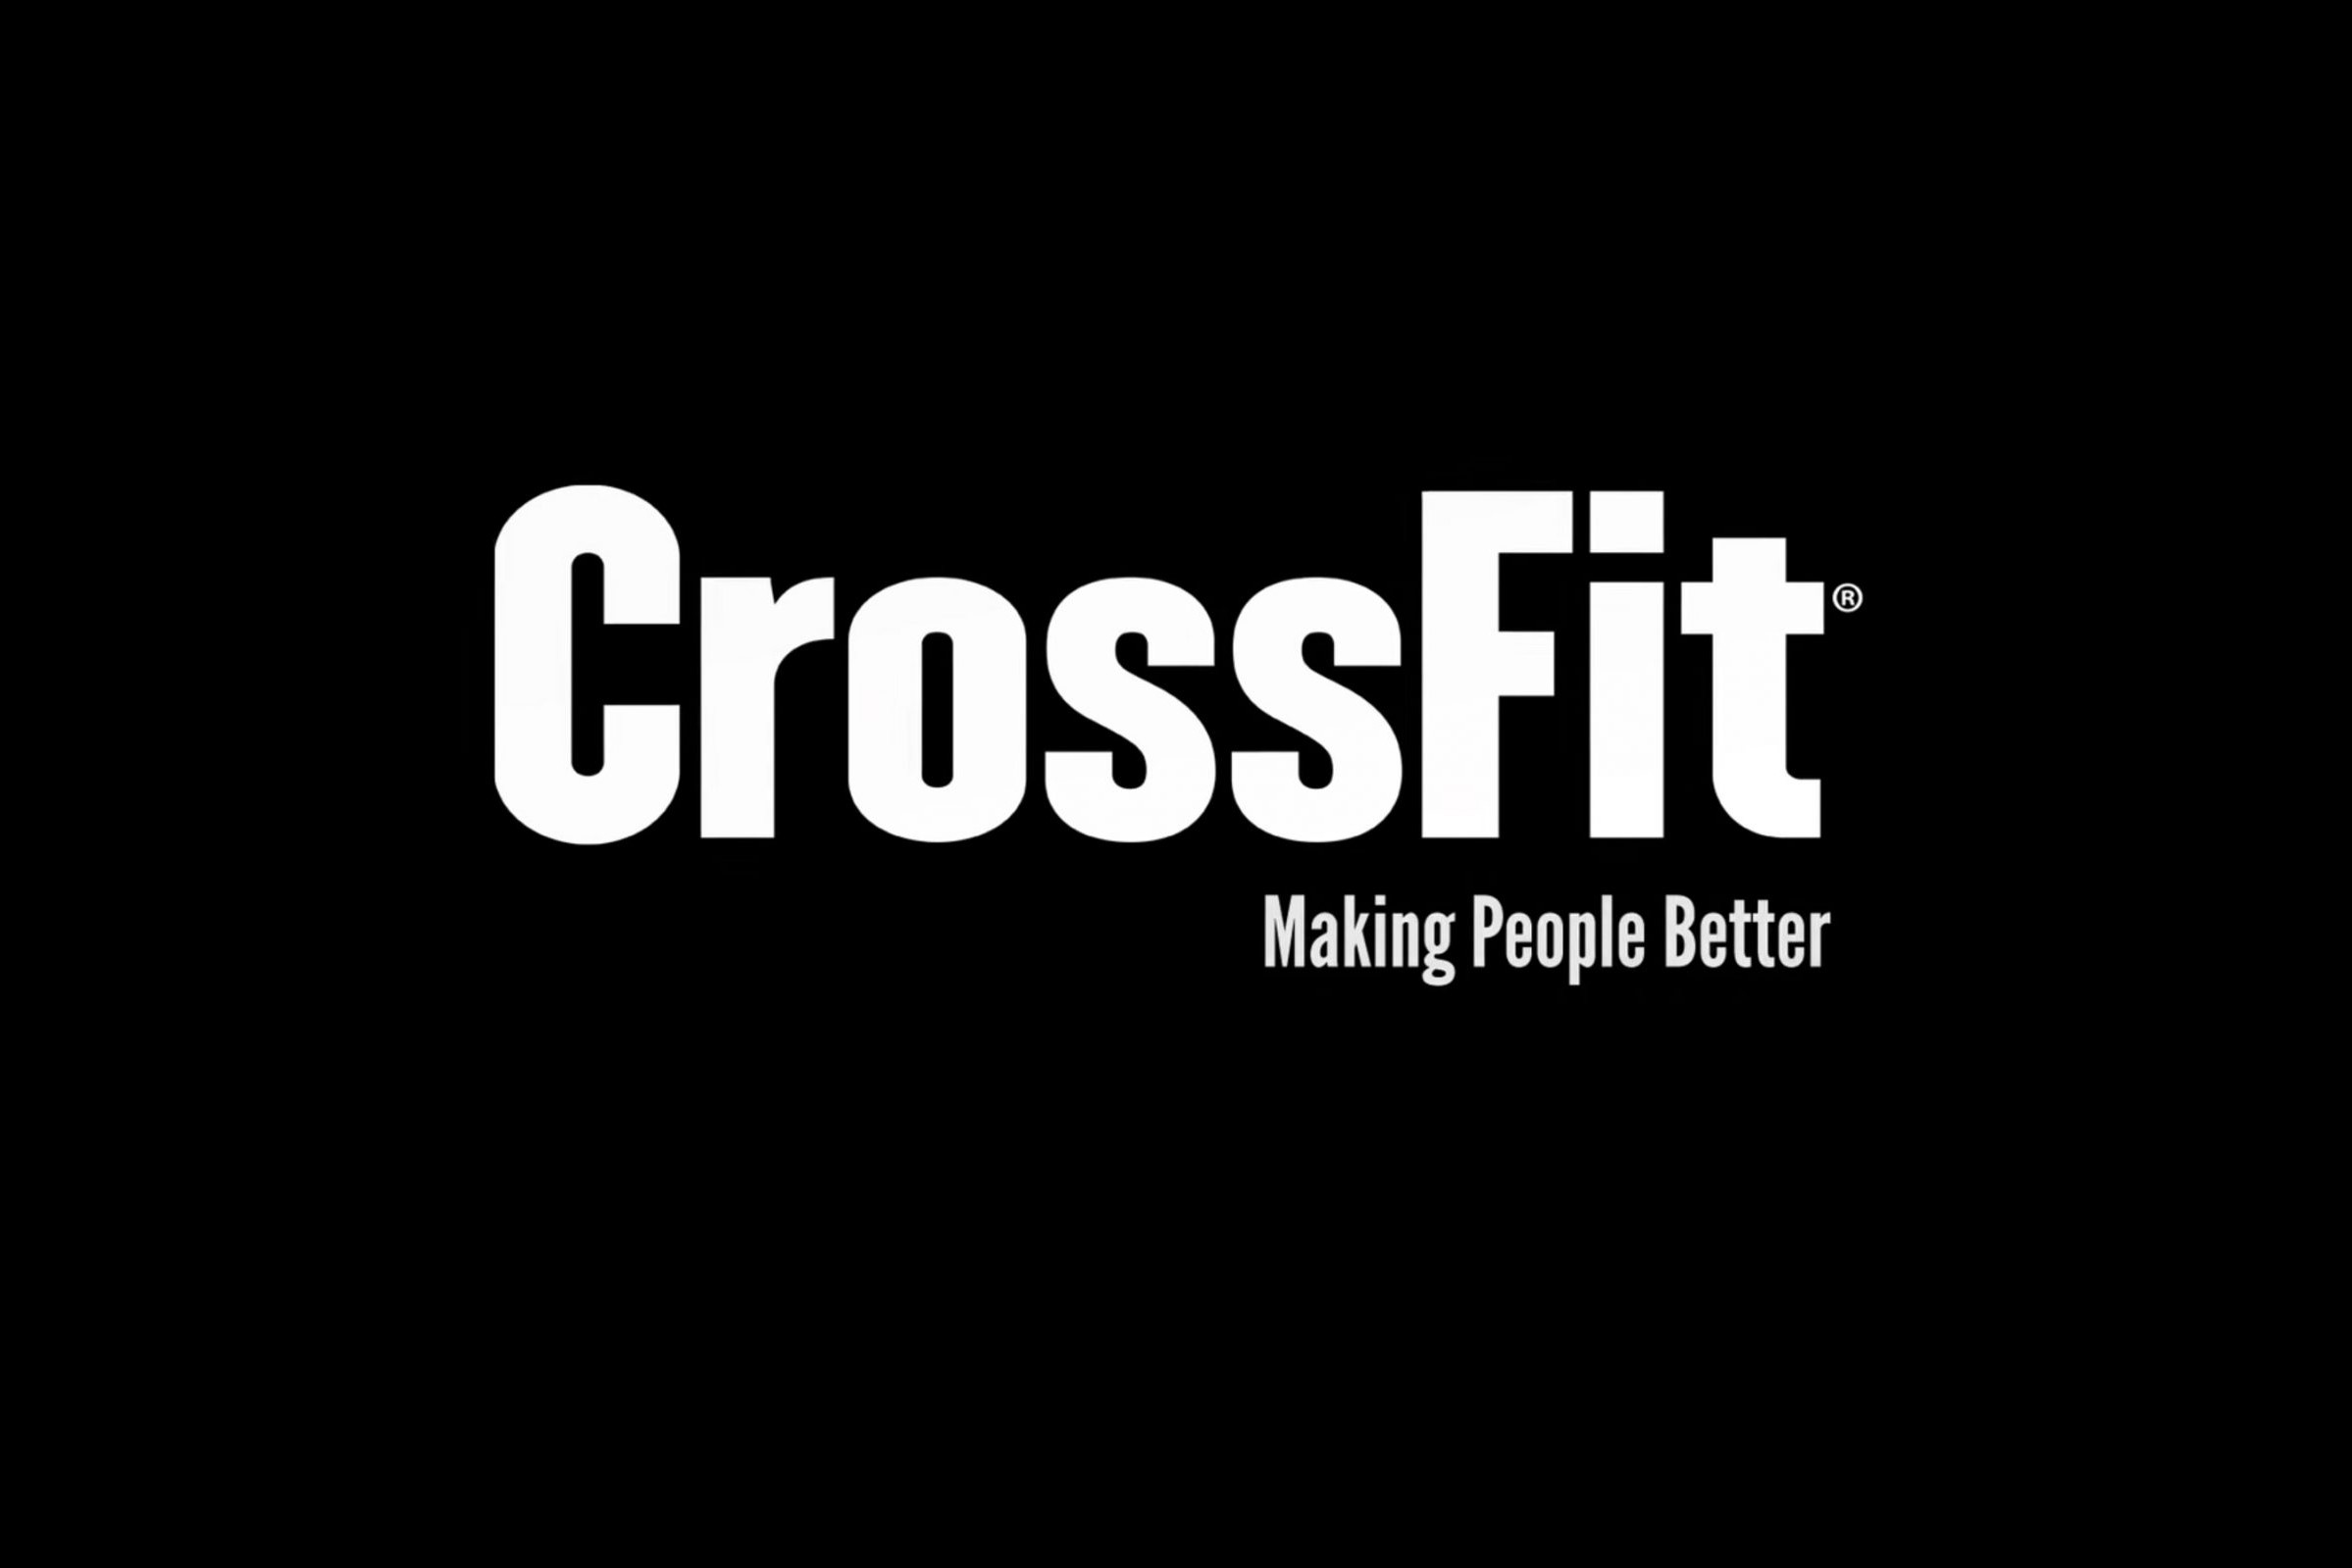 poster-what-is-crossfit